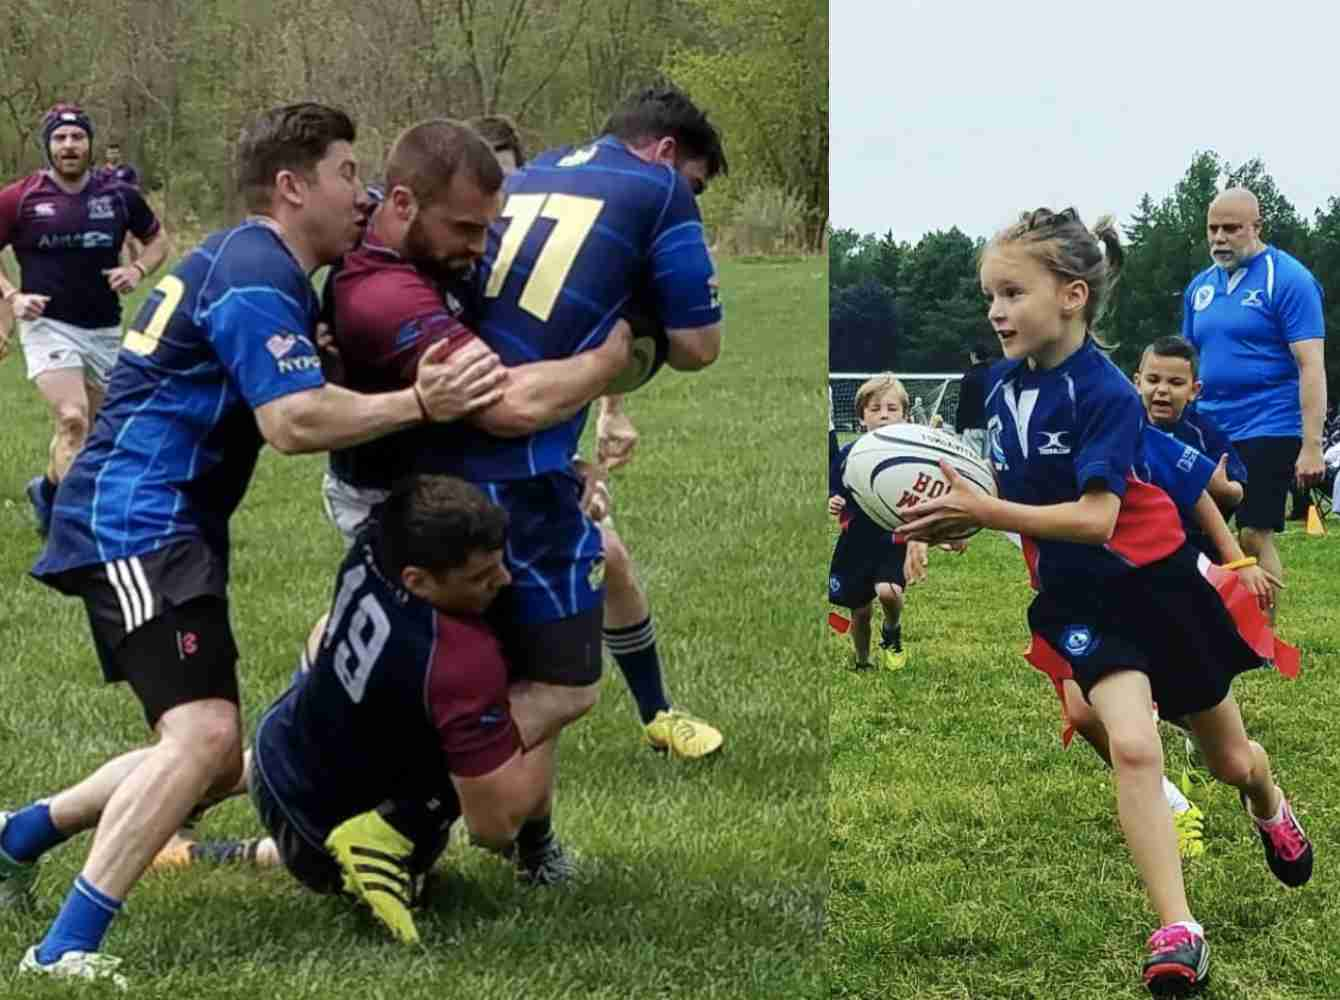 Rugby Gaining Popularity And Participation In Monmouth County The Journal Publications